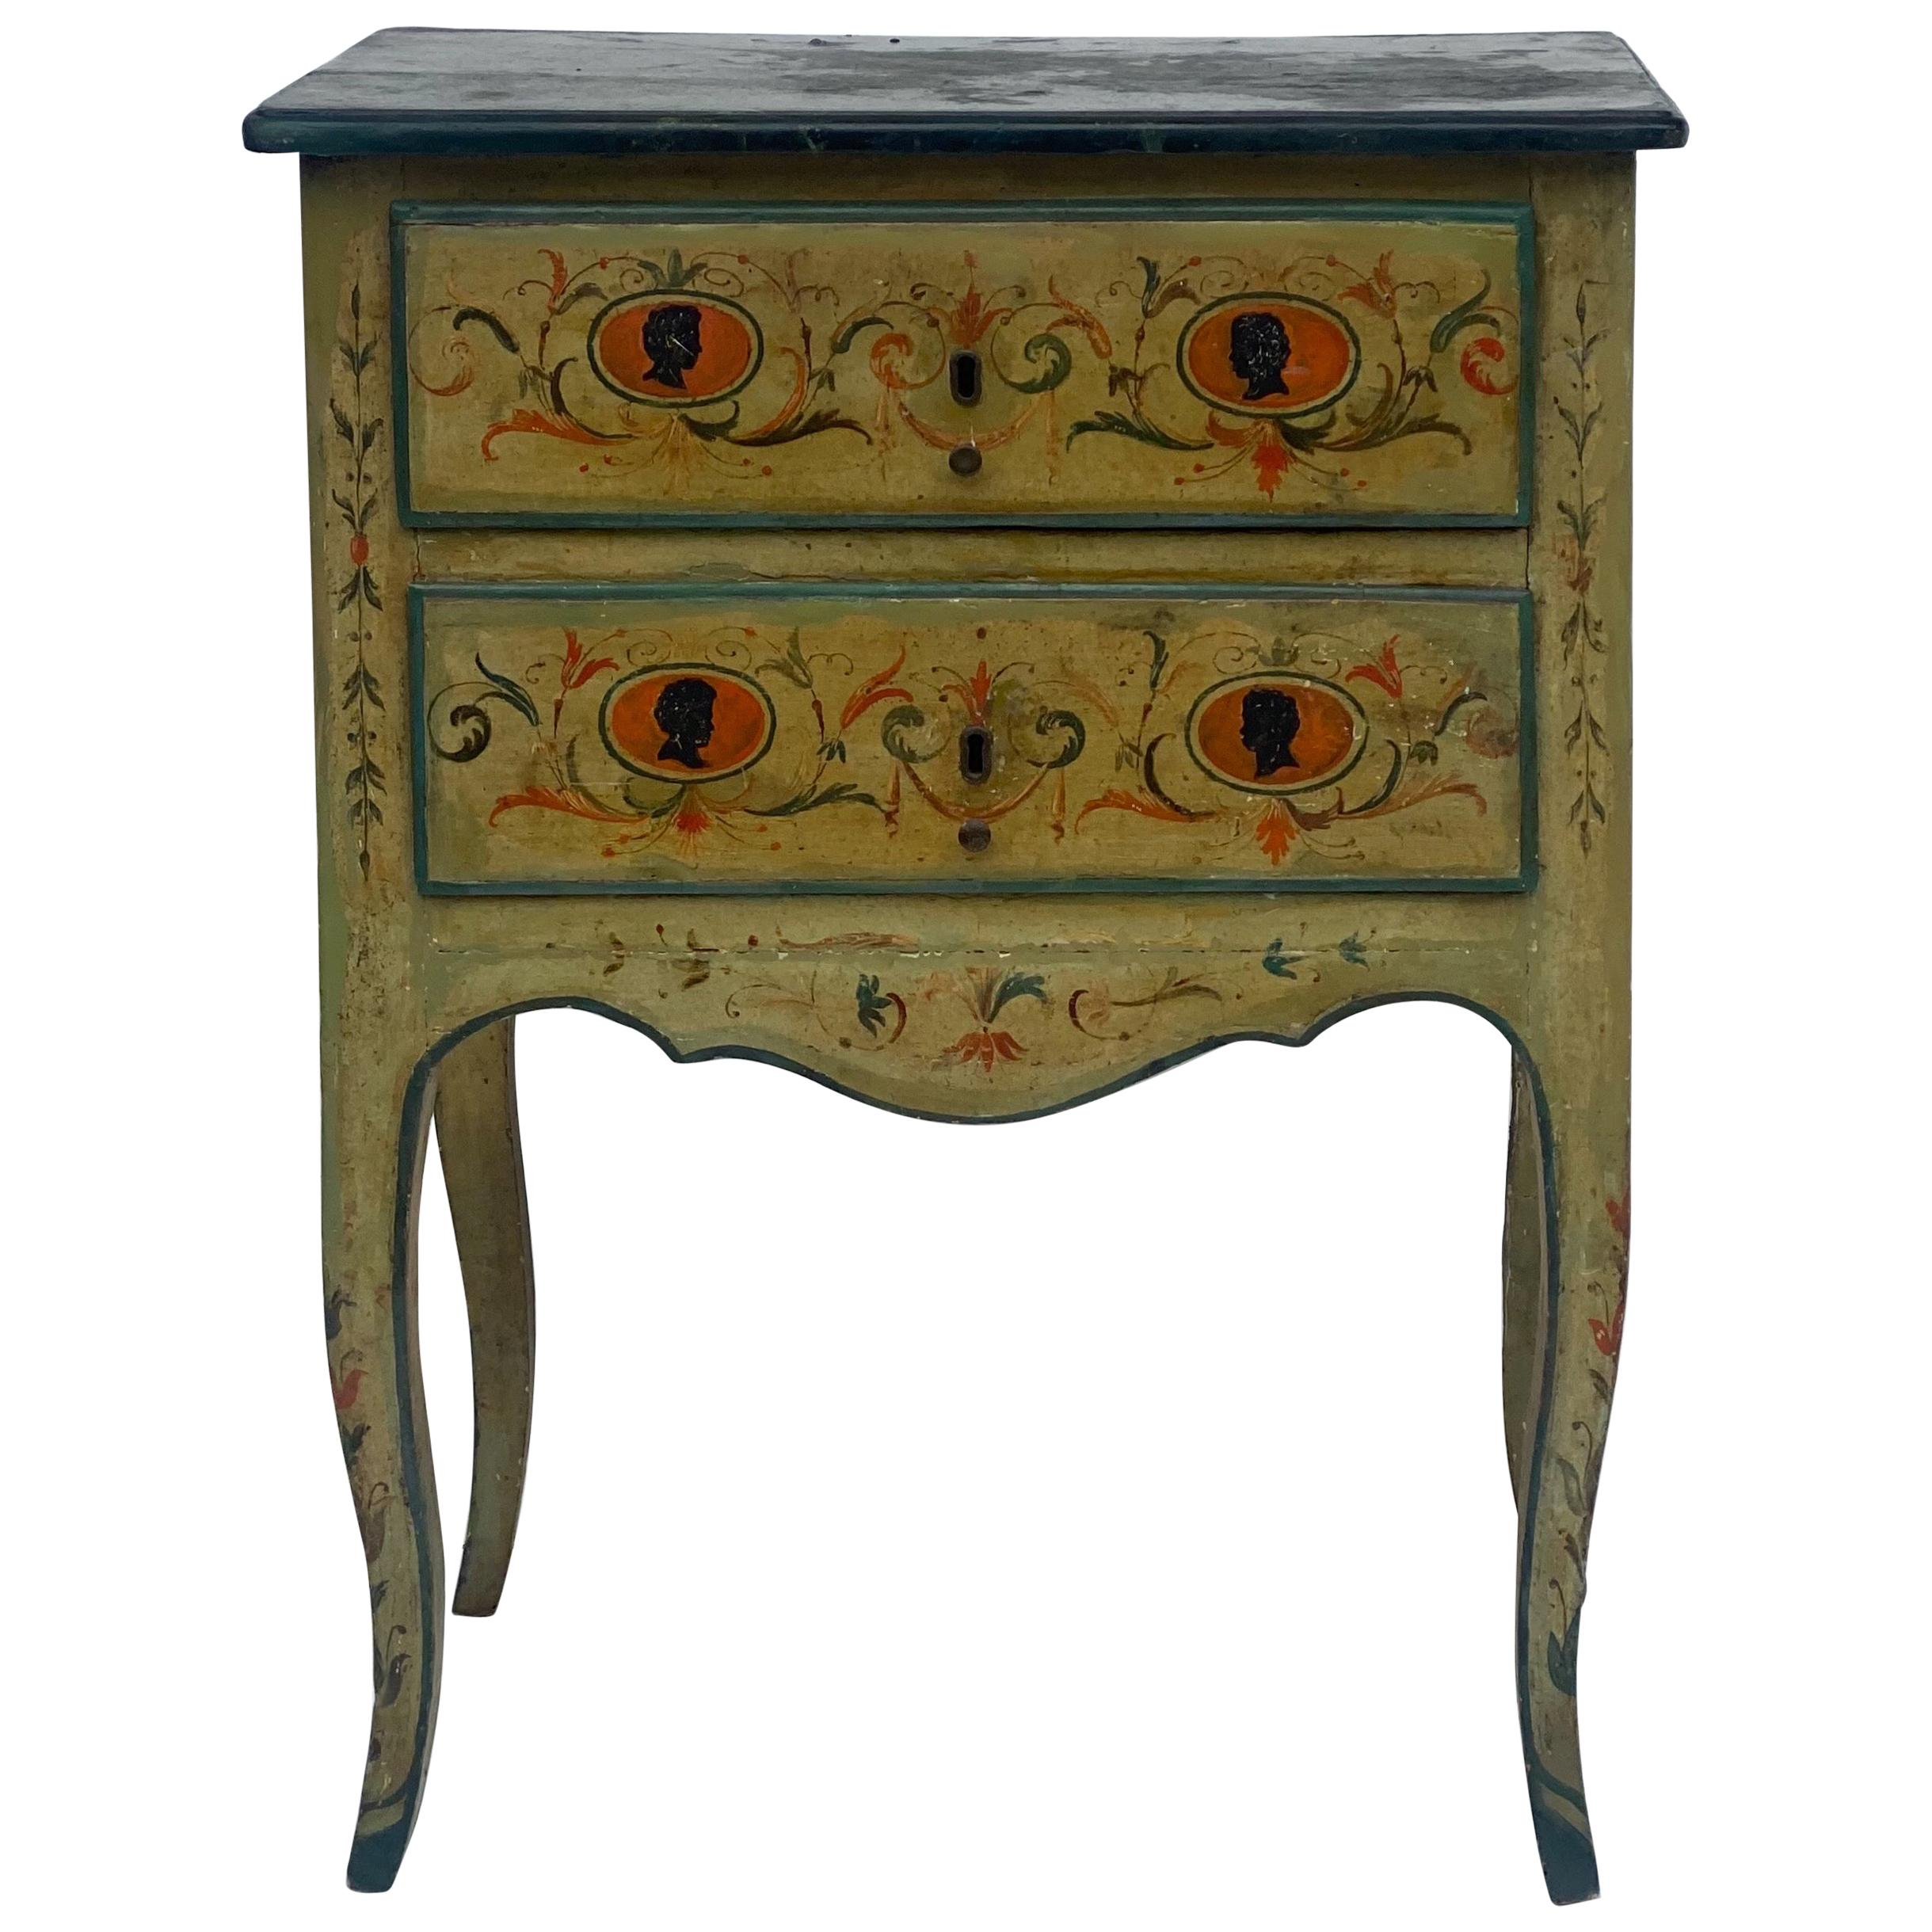 Petite Venetian Neoclassical Style Painted Commode with Faux Marble Top